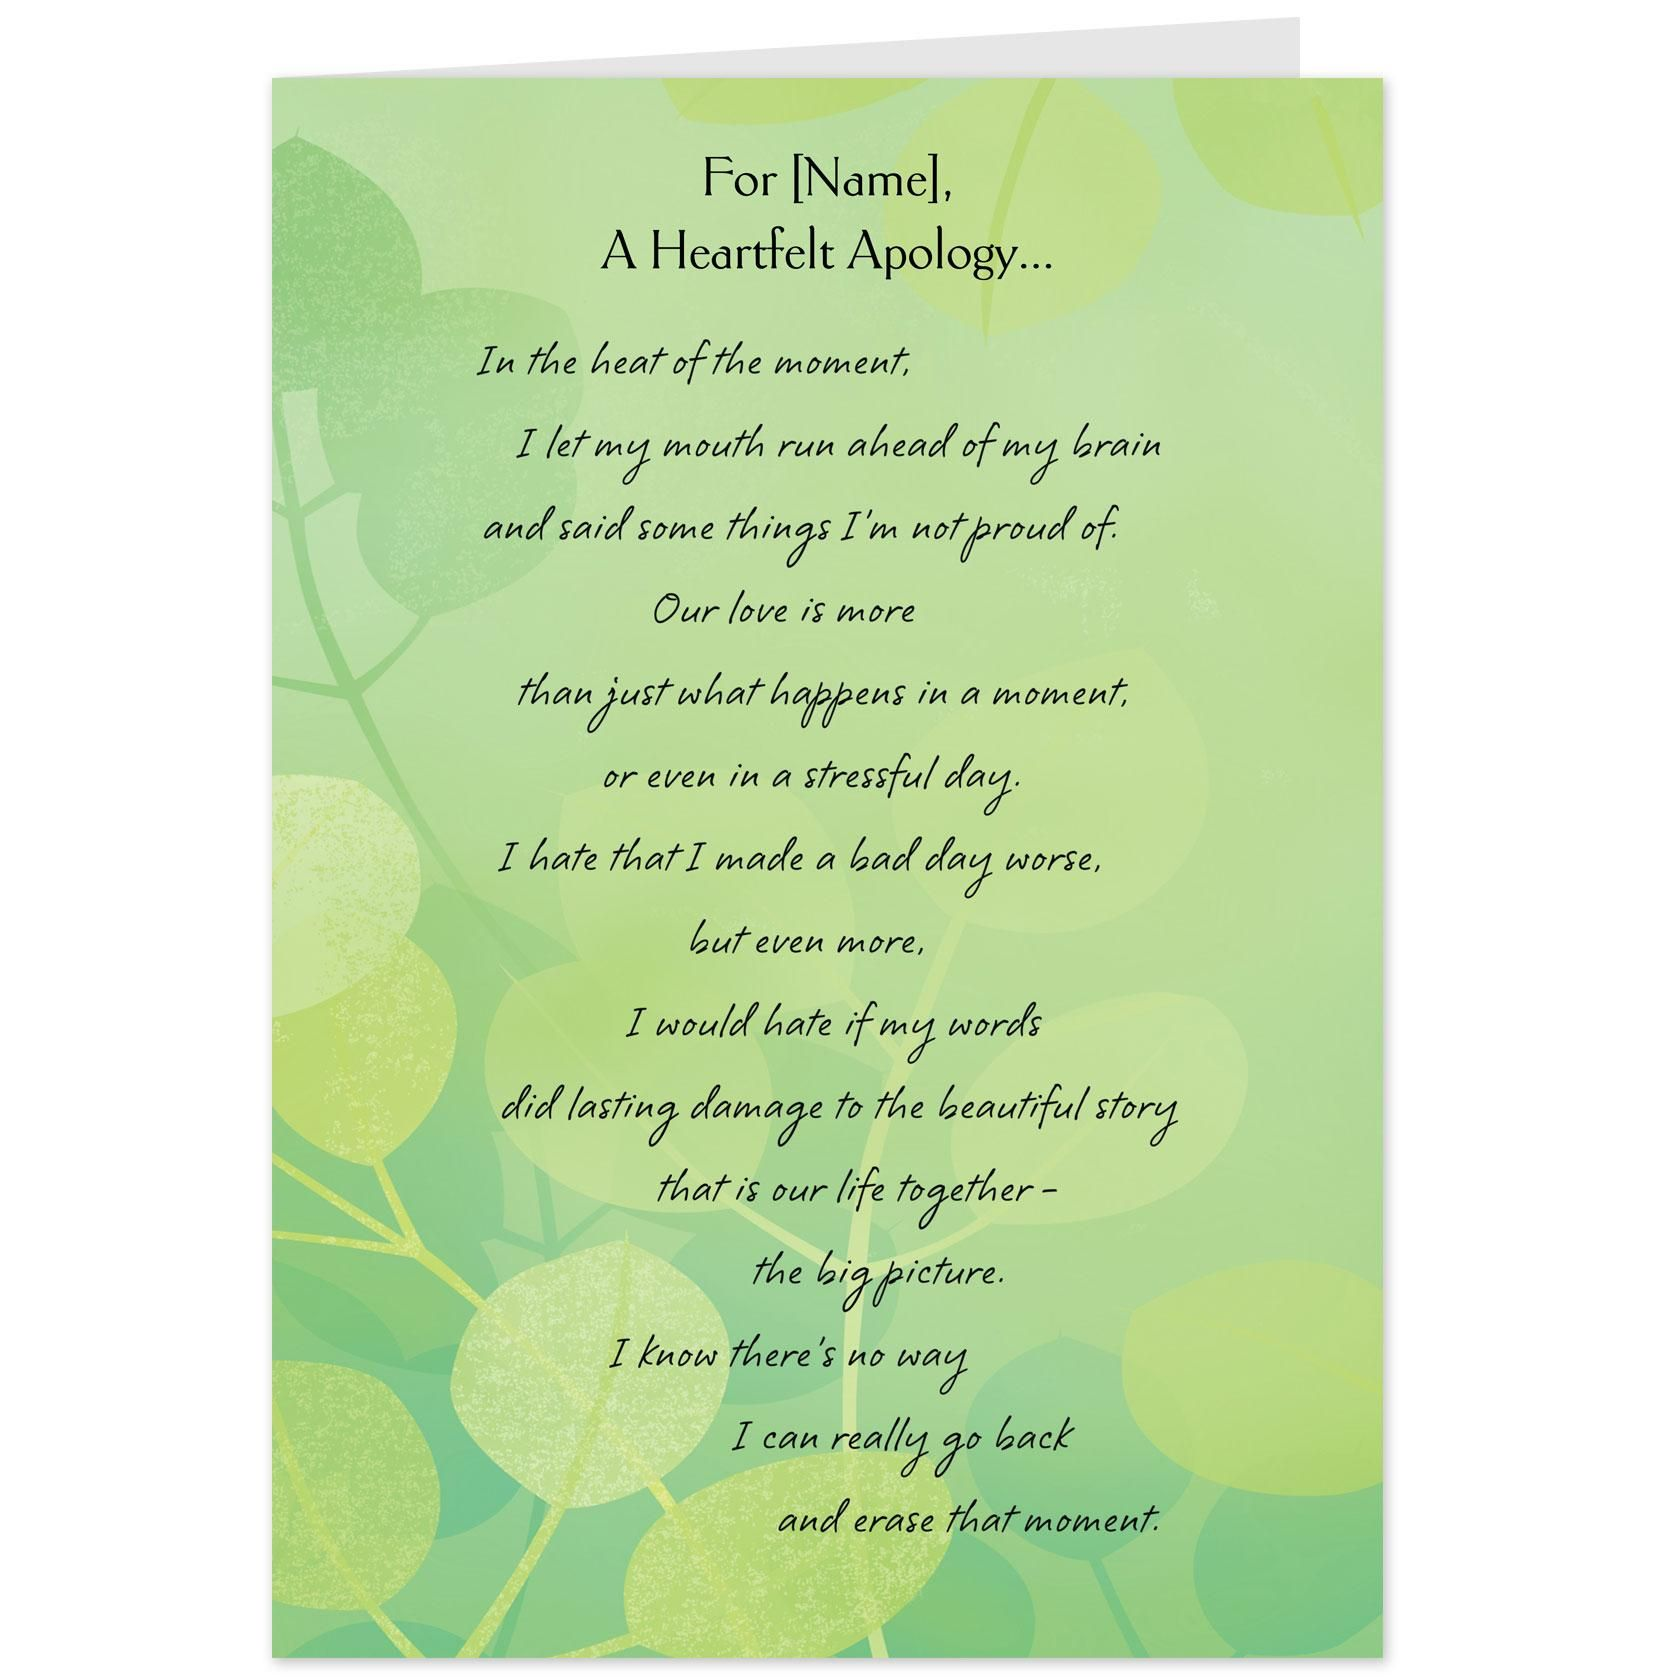 Hallmark troubled relationship cards yahoo image search results hallmark troubled relationship cards yahoo image search results bookmarktalkfo Images